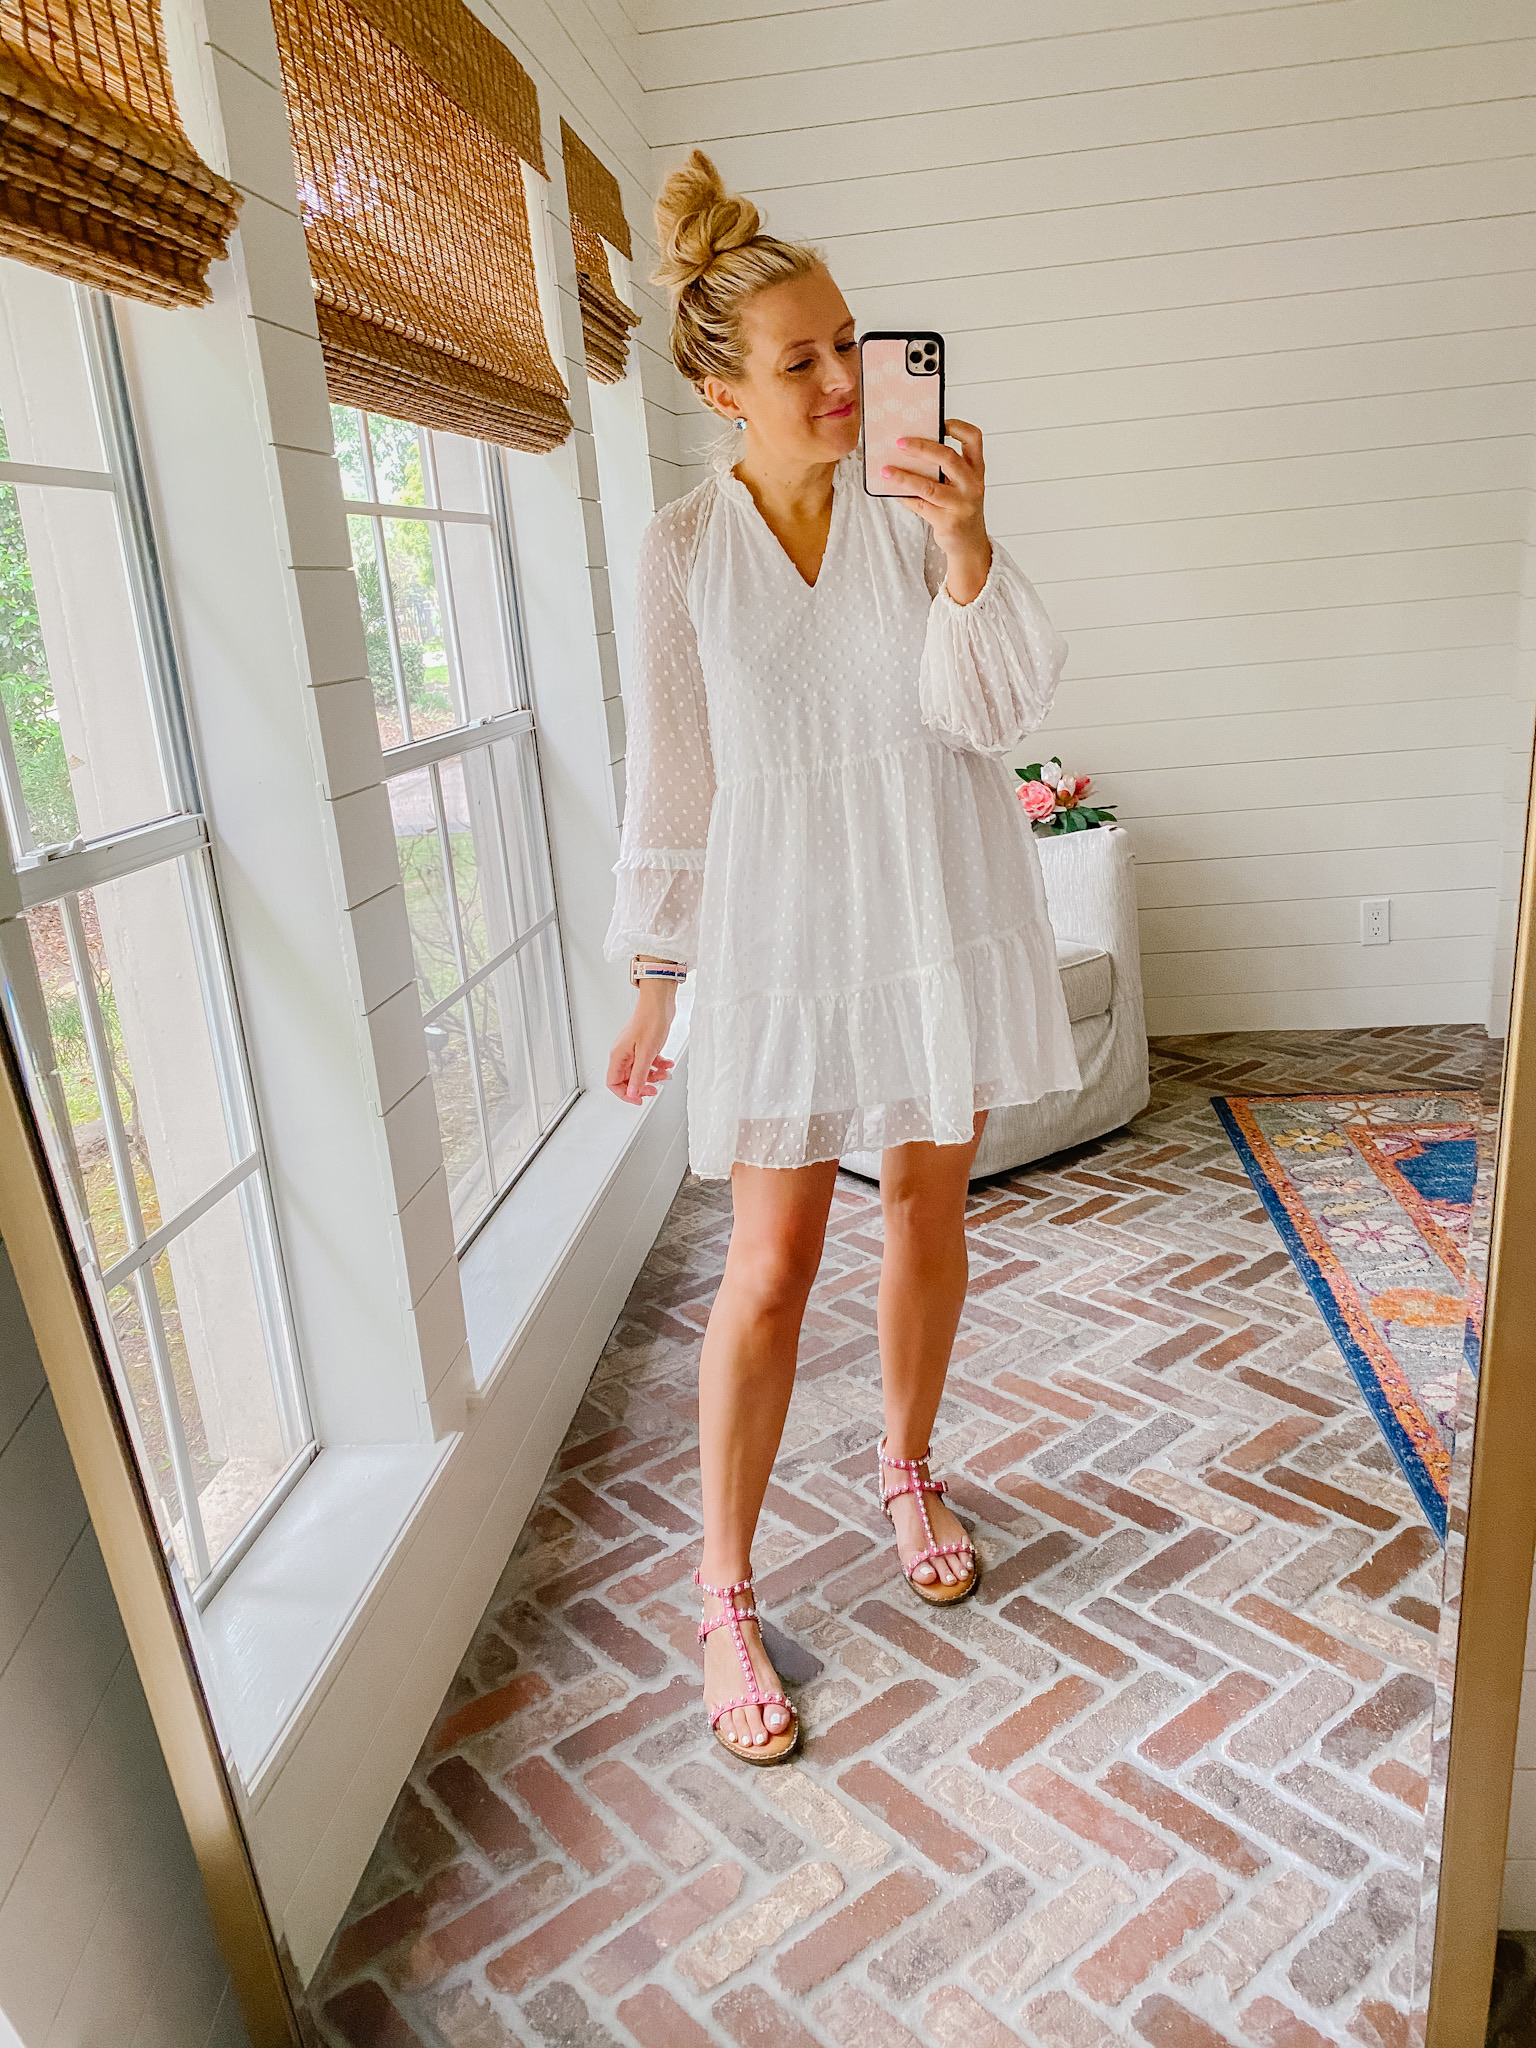 Express New Arrivals by popular Houston fashion blog, The House of Fancy: image of a woman wearing a Express white Swiss dot dress with pink strap sandals.